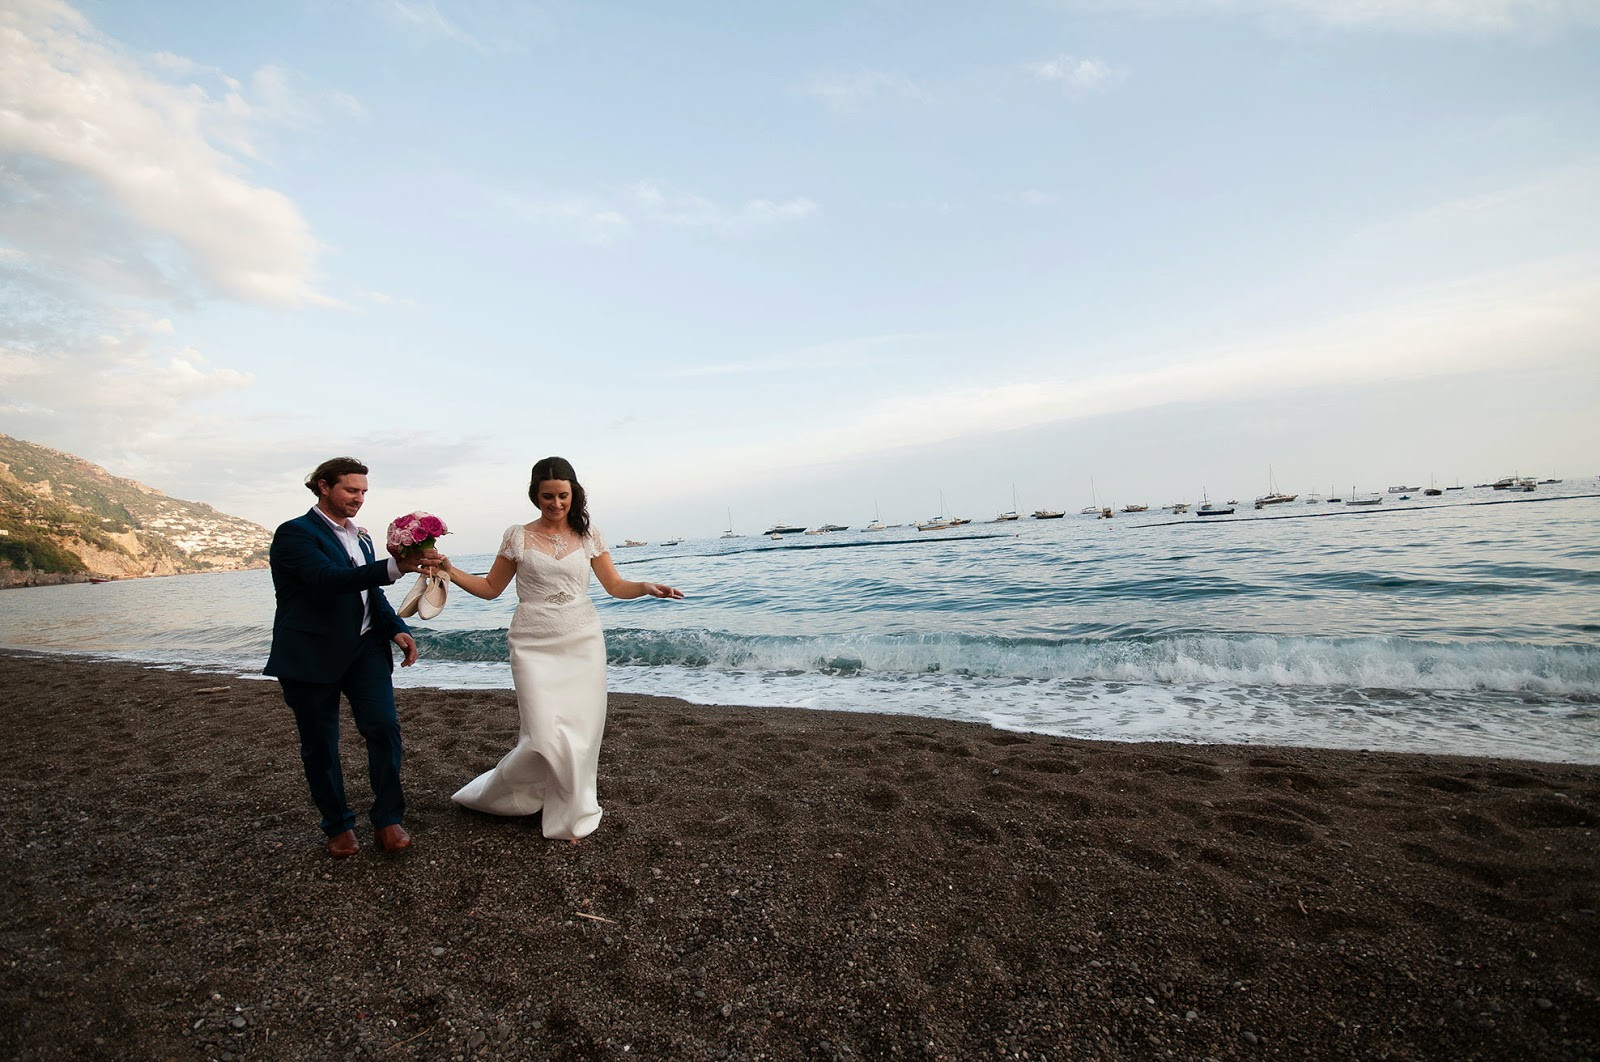 Wedding portraits on the beach of Positano